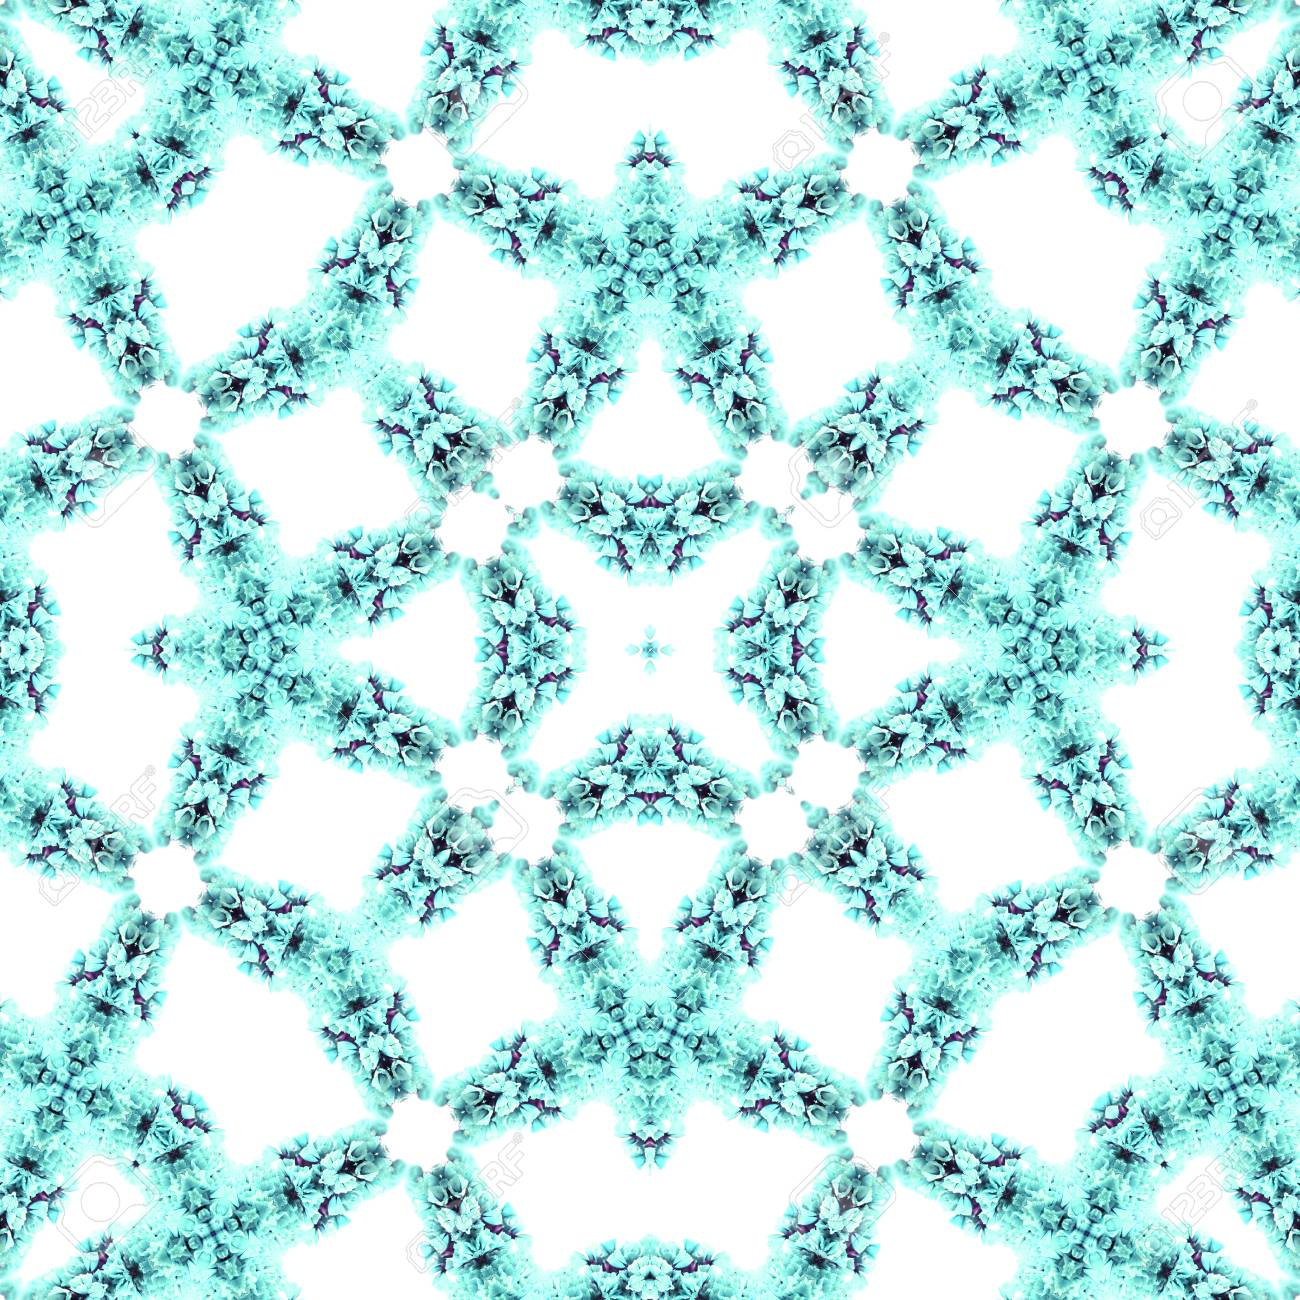 Abstract flowers seamless pattern background. Kaleidoscope from flowers. Hydraulic tile design. - 104074823